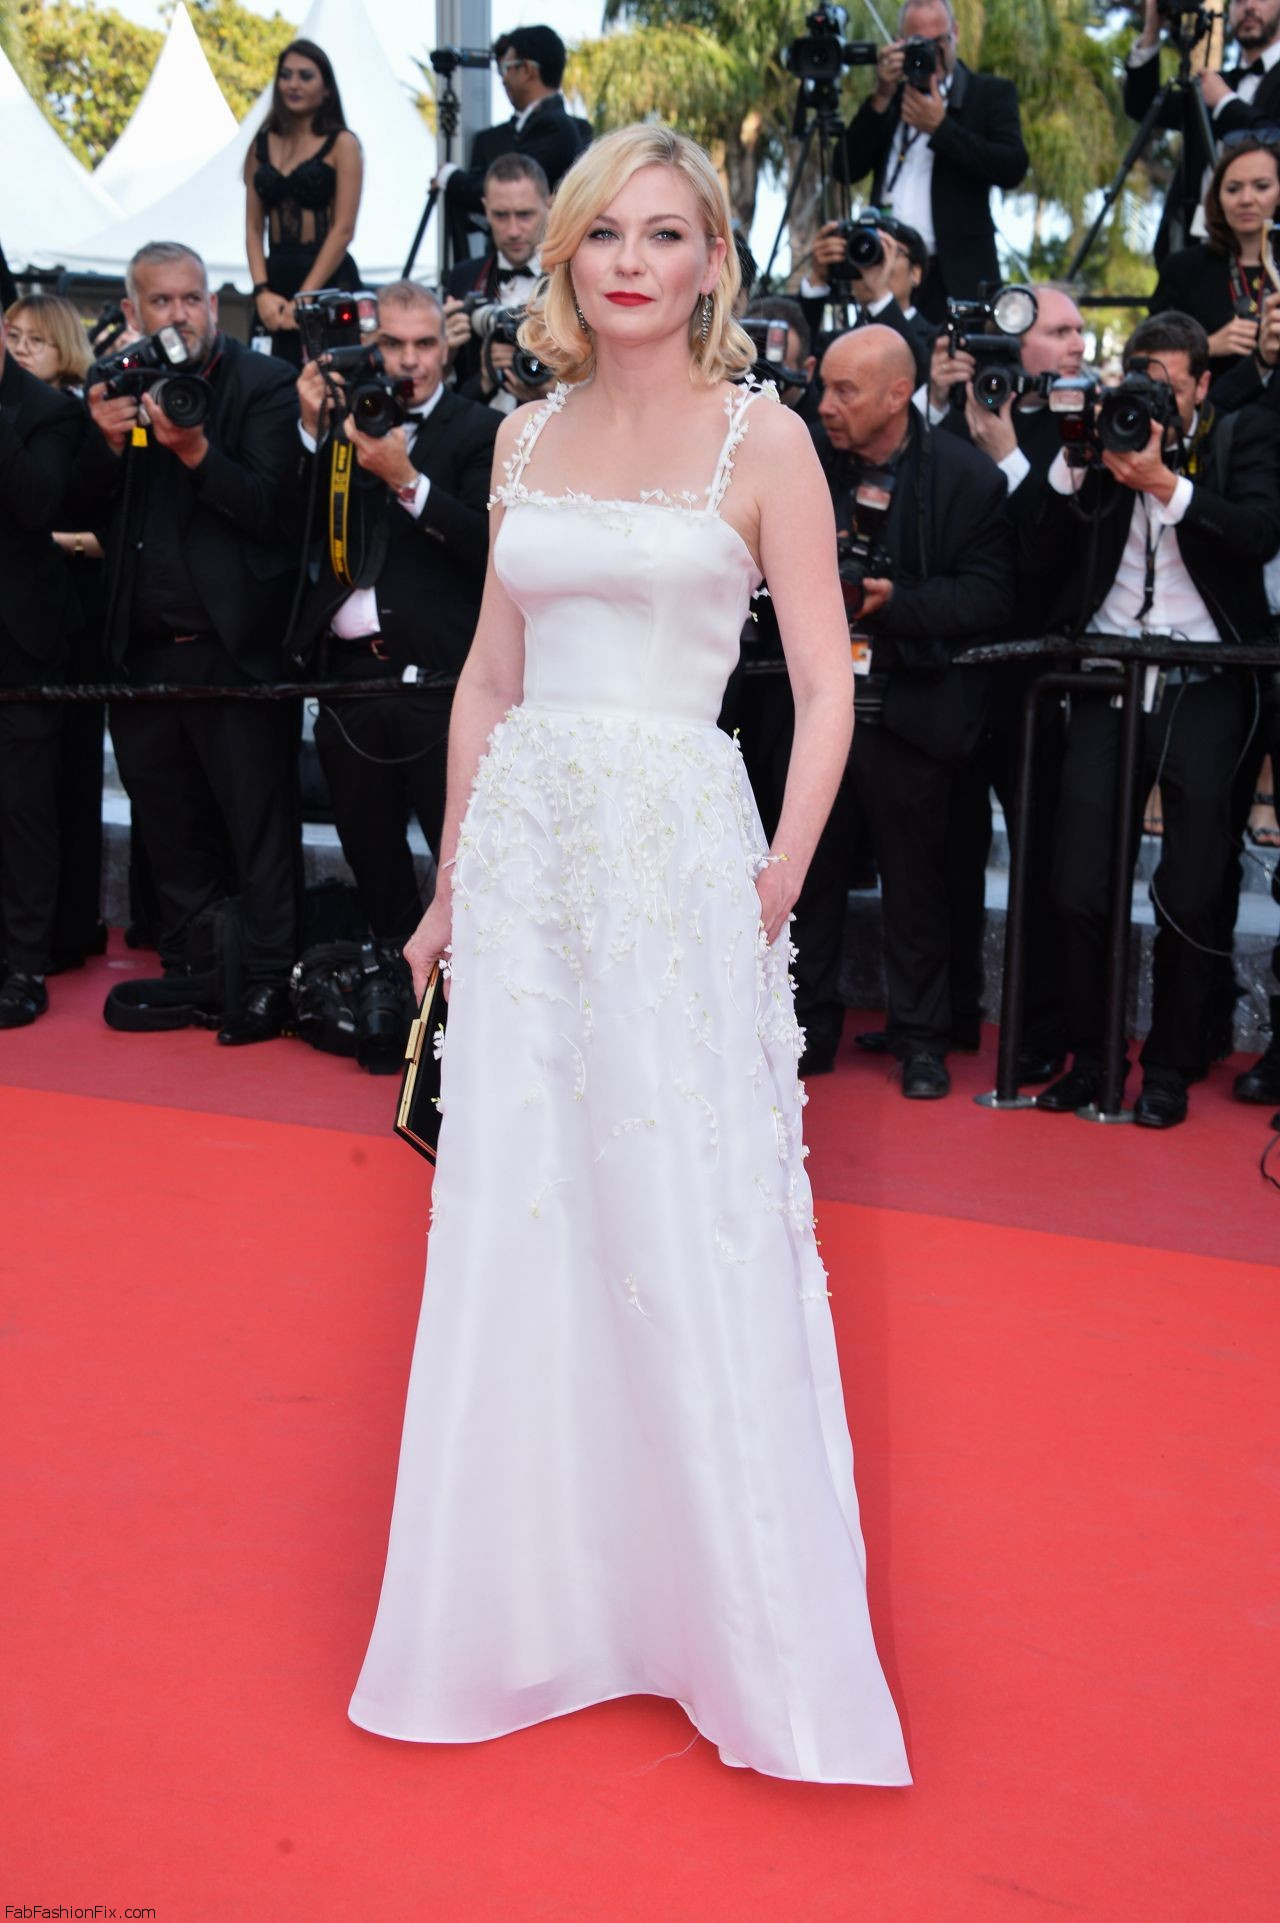 kirsten-dunst-the-loving-premiere-at-69th-cannes-film-festival-5-16-2016-4